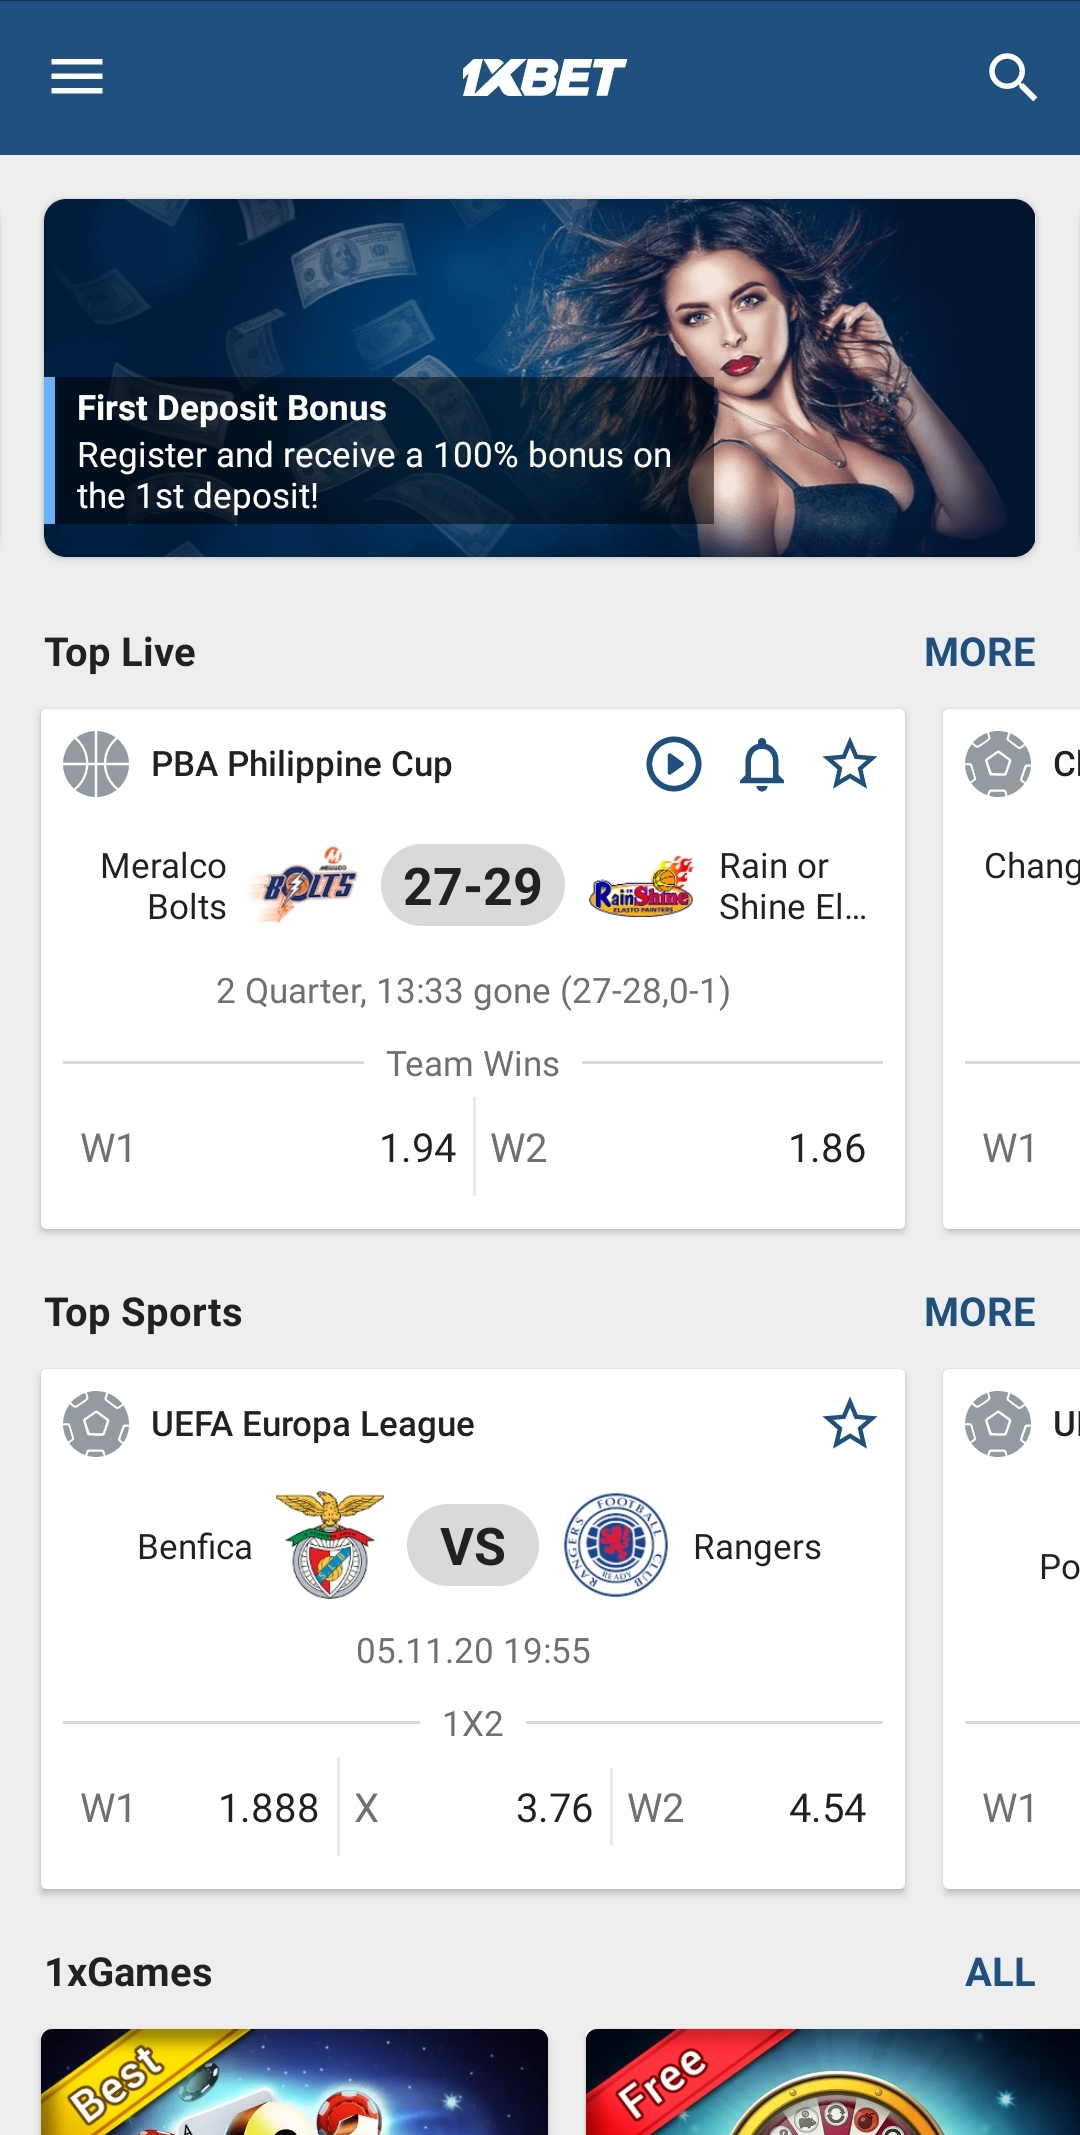 1xBet mobile application